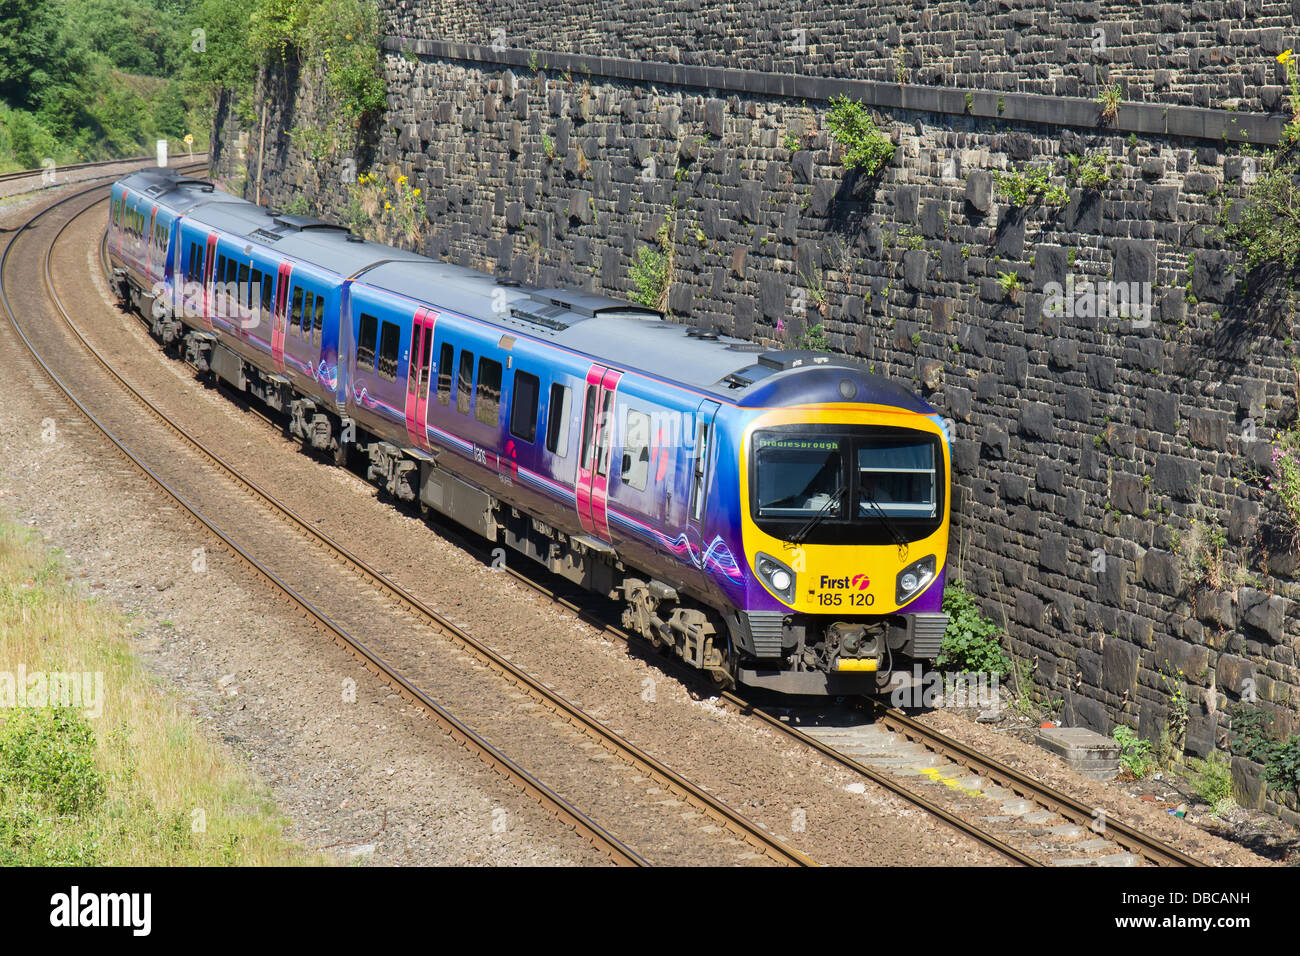 A class 185 Transpennine Express passing through Marsden, West Yorkshire on its way to Middlesborough on the 26th - Stock Image